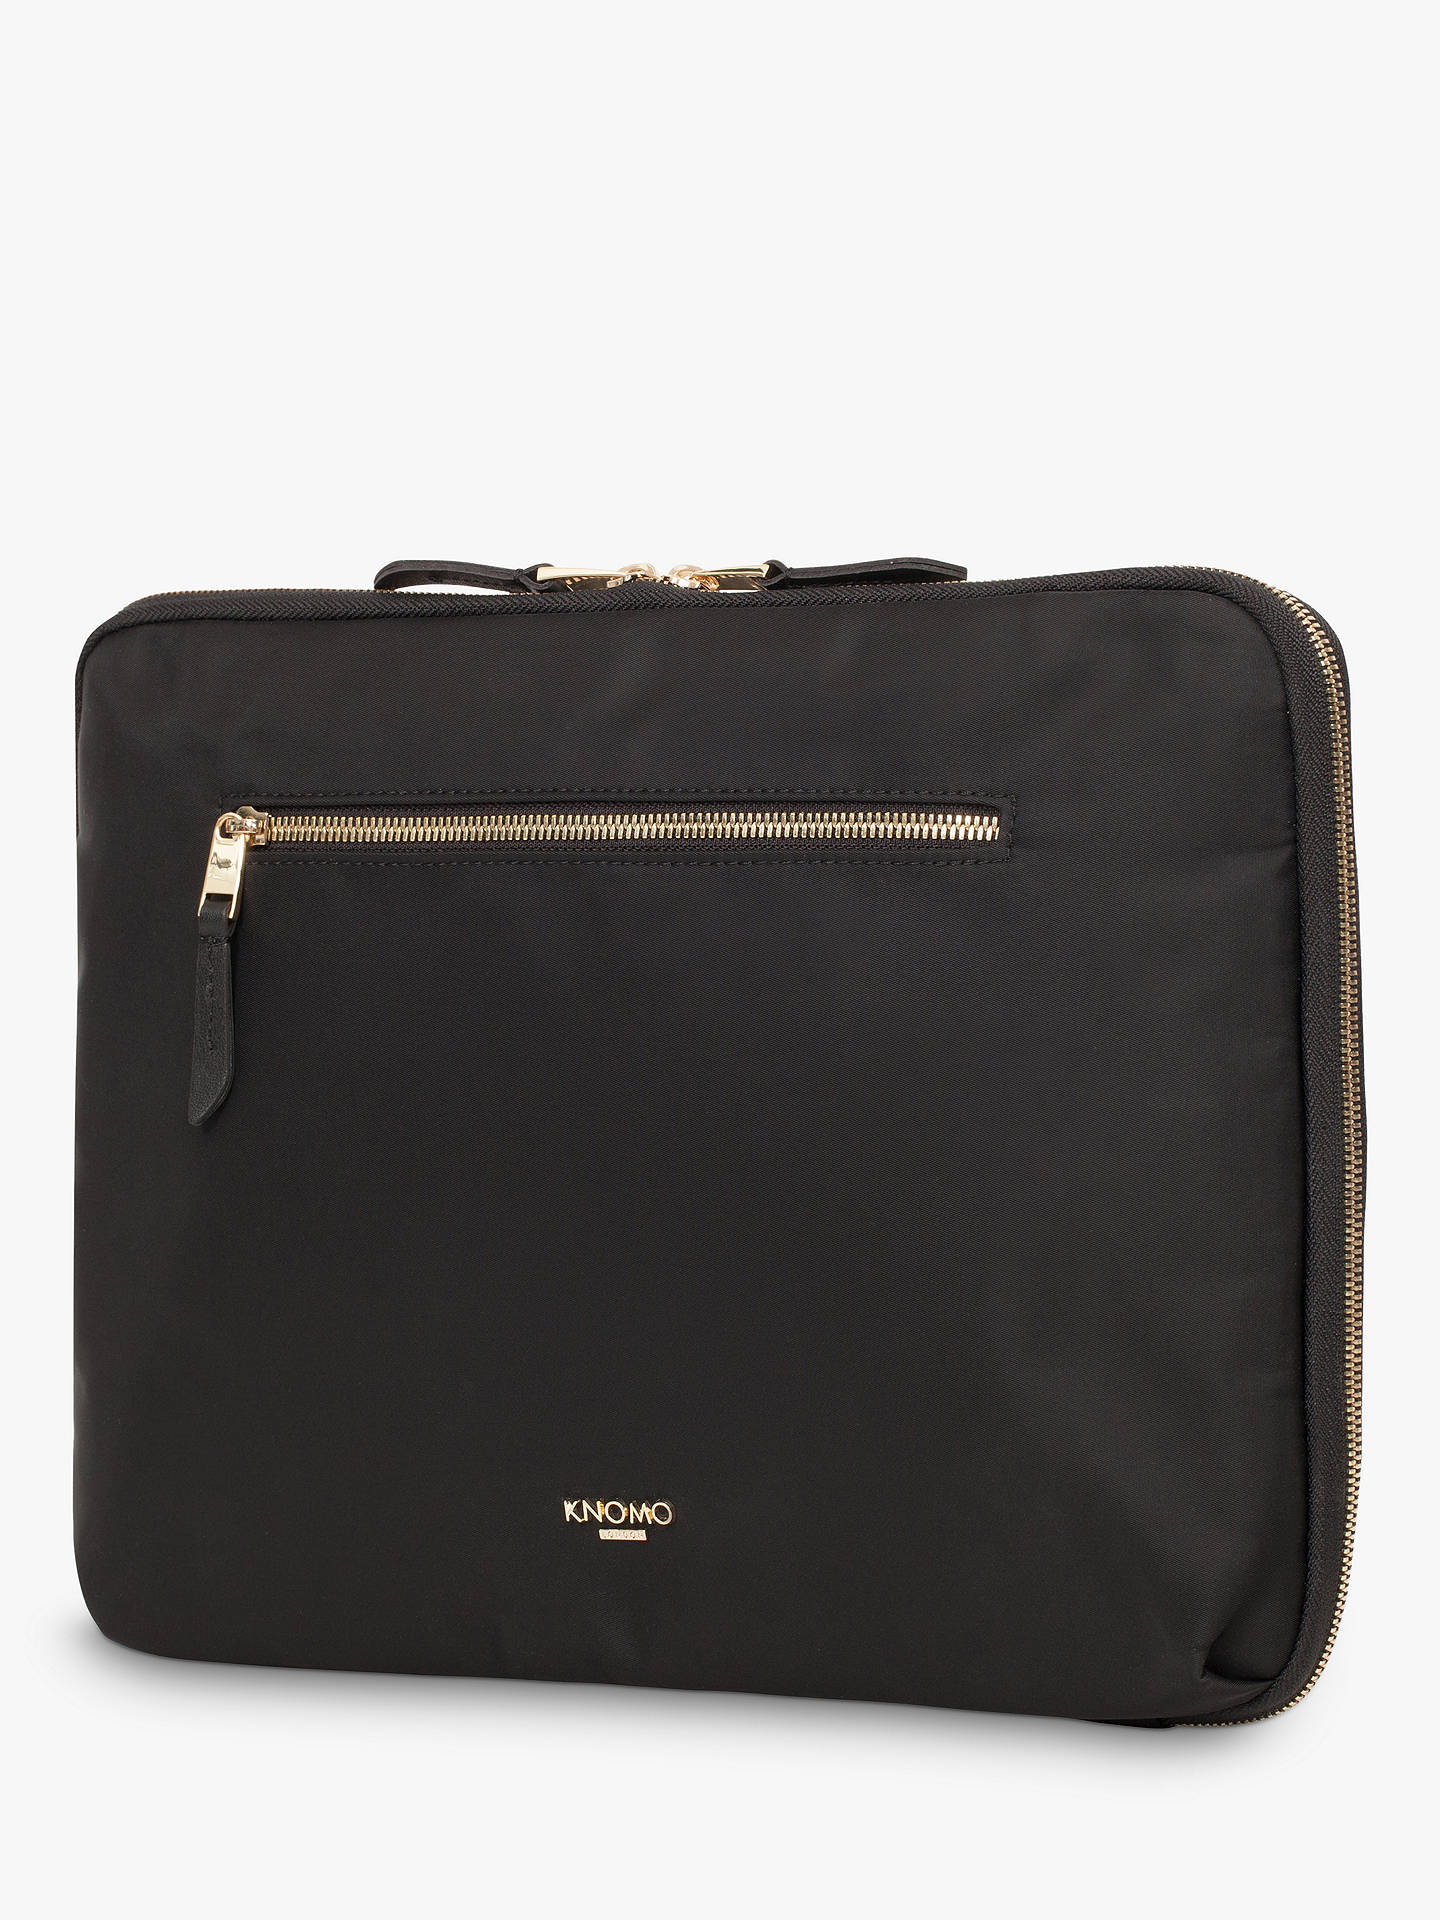 "BuyKnomo Mayfair Knomad Water-Resistant Tech Organiser/Case for Tablets up to 10.5"", Black Online at johnlewis.com"